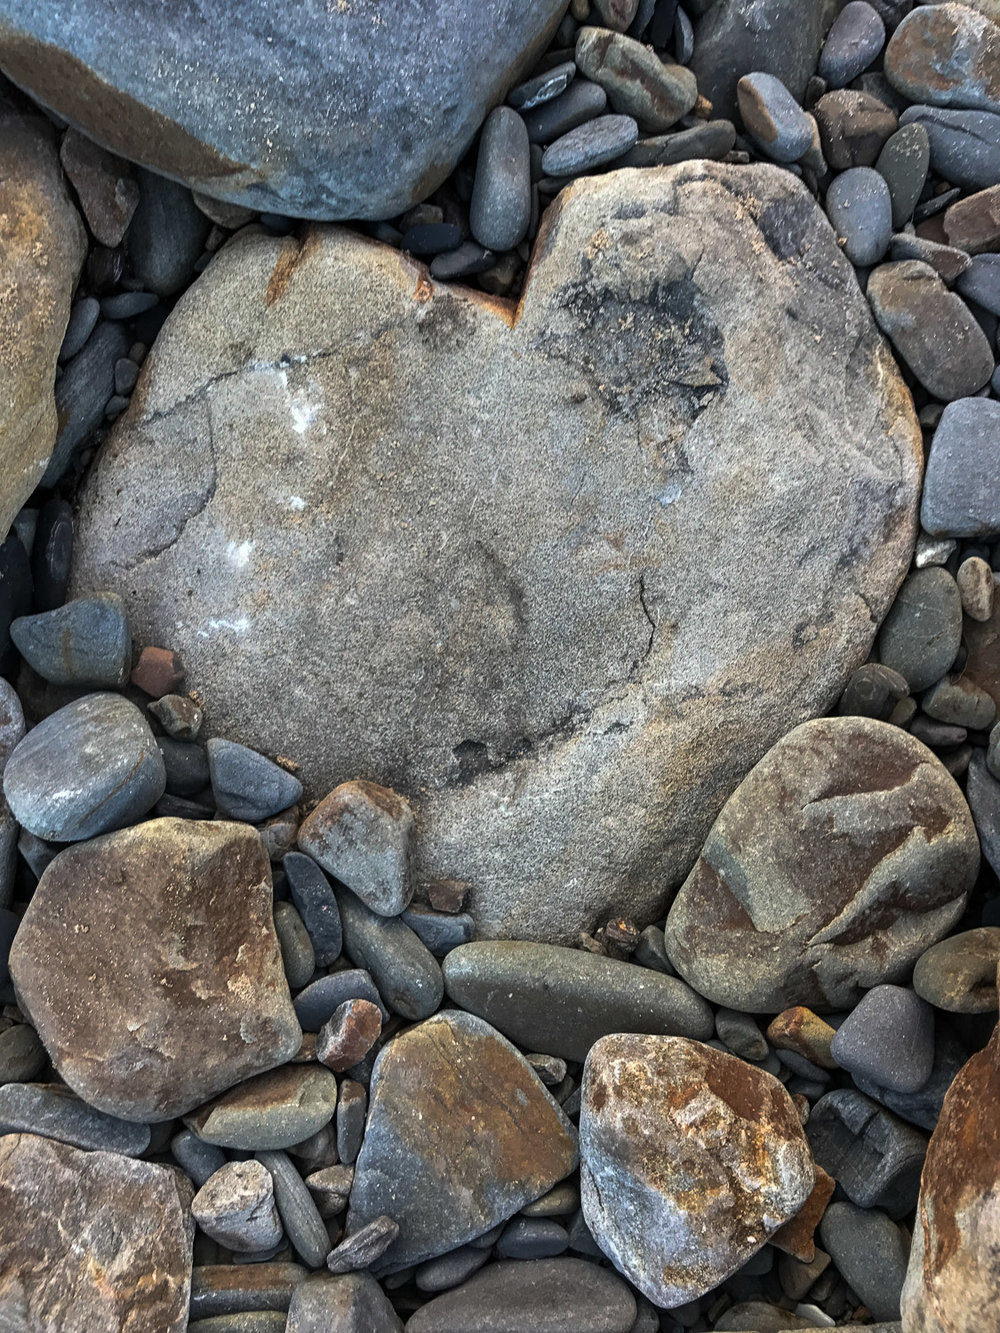 Heart pebble on Monkstone beach